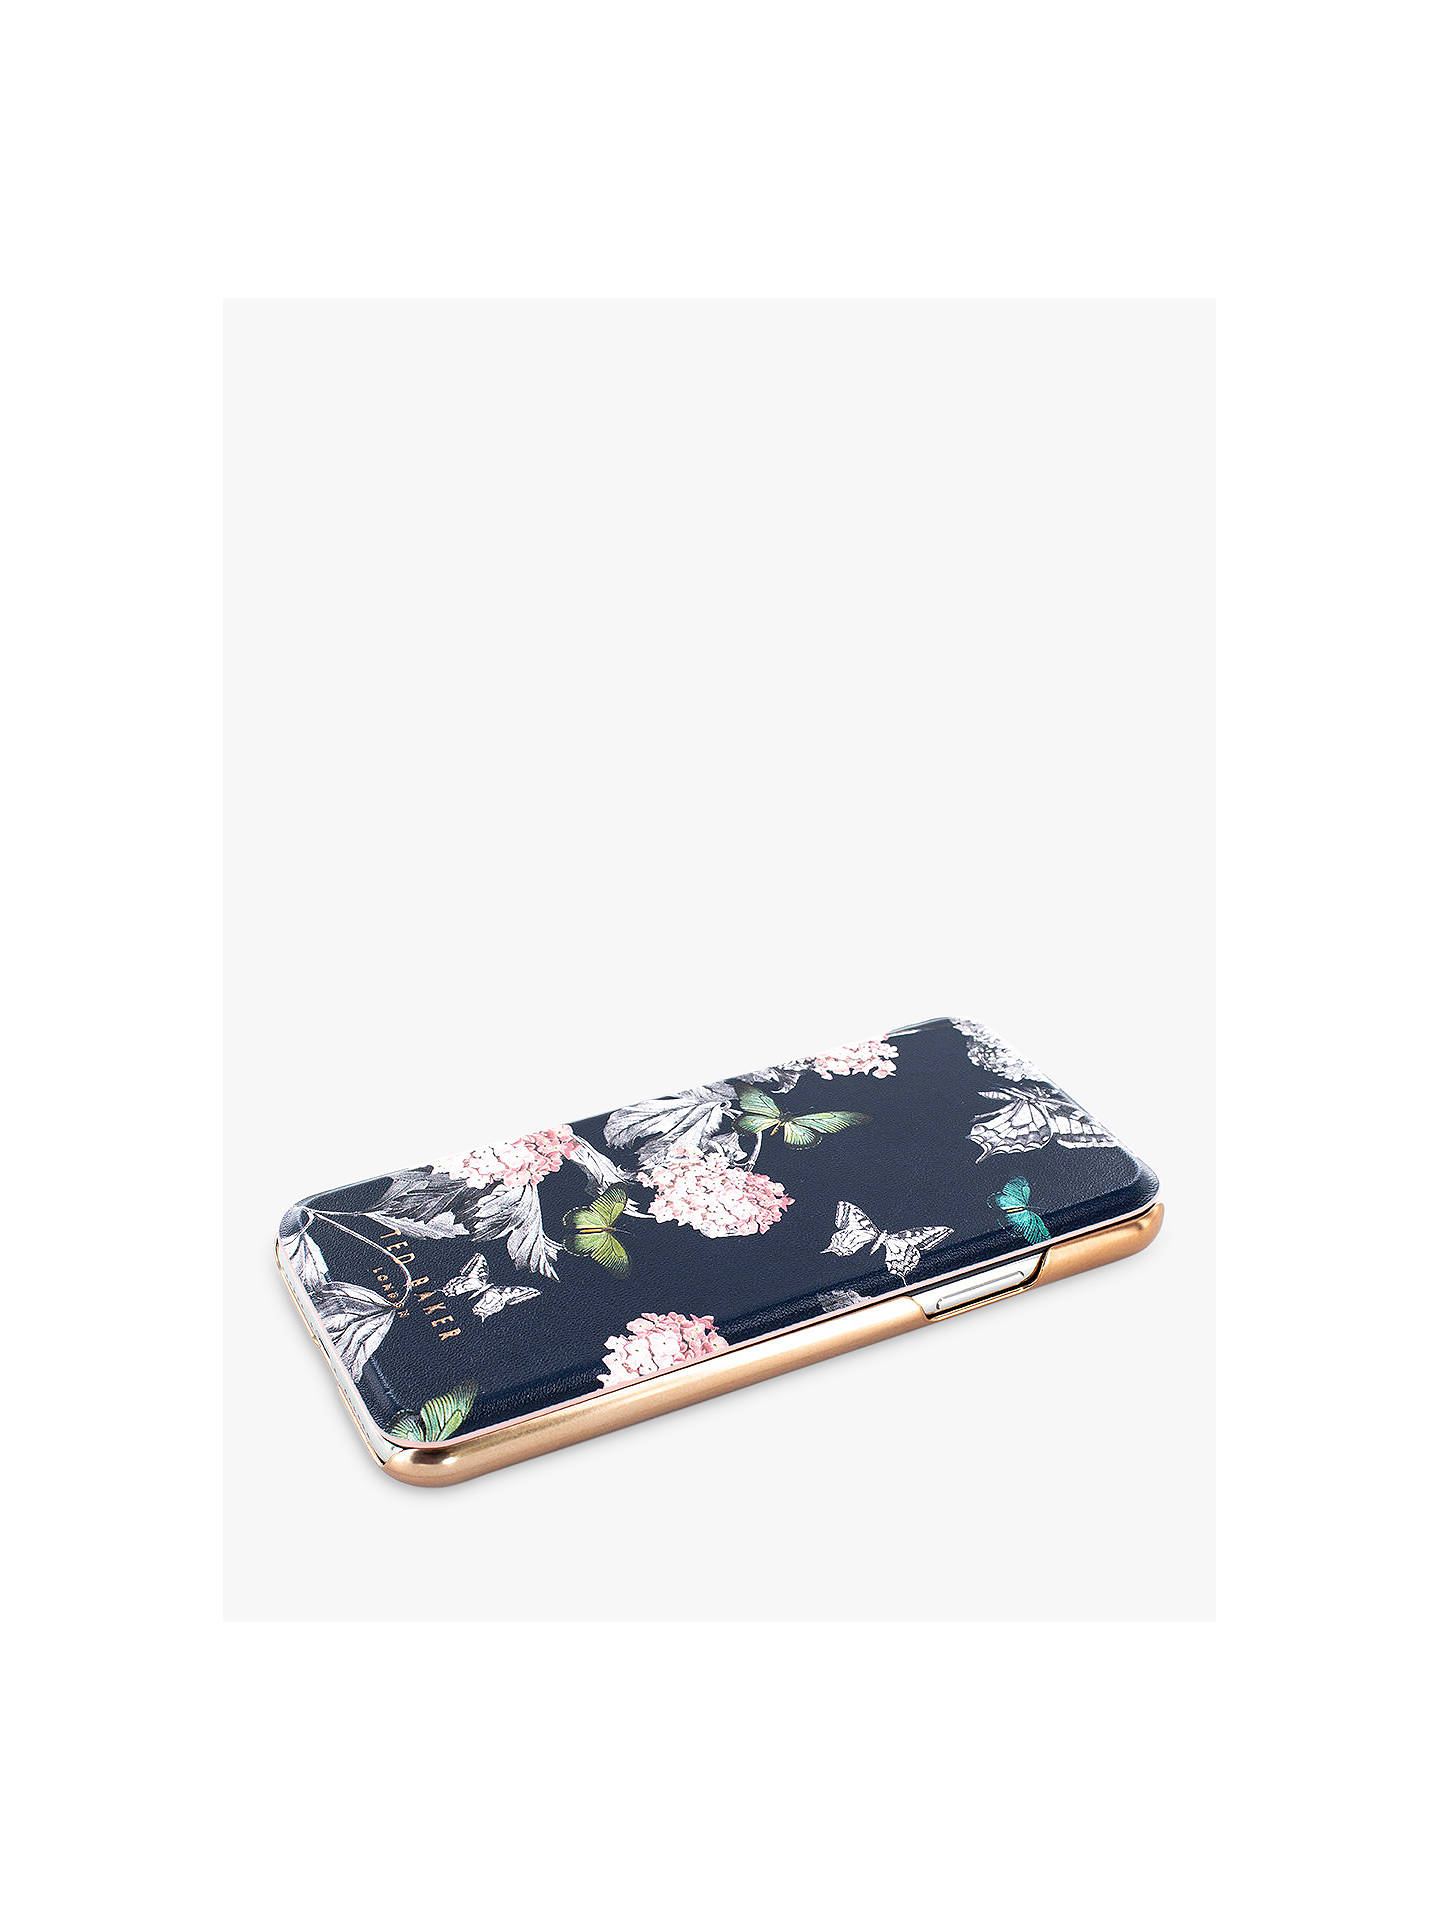 Buy Ted Baker Moondance Folio Case for iPhone X Online at johnlewis.com